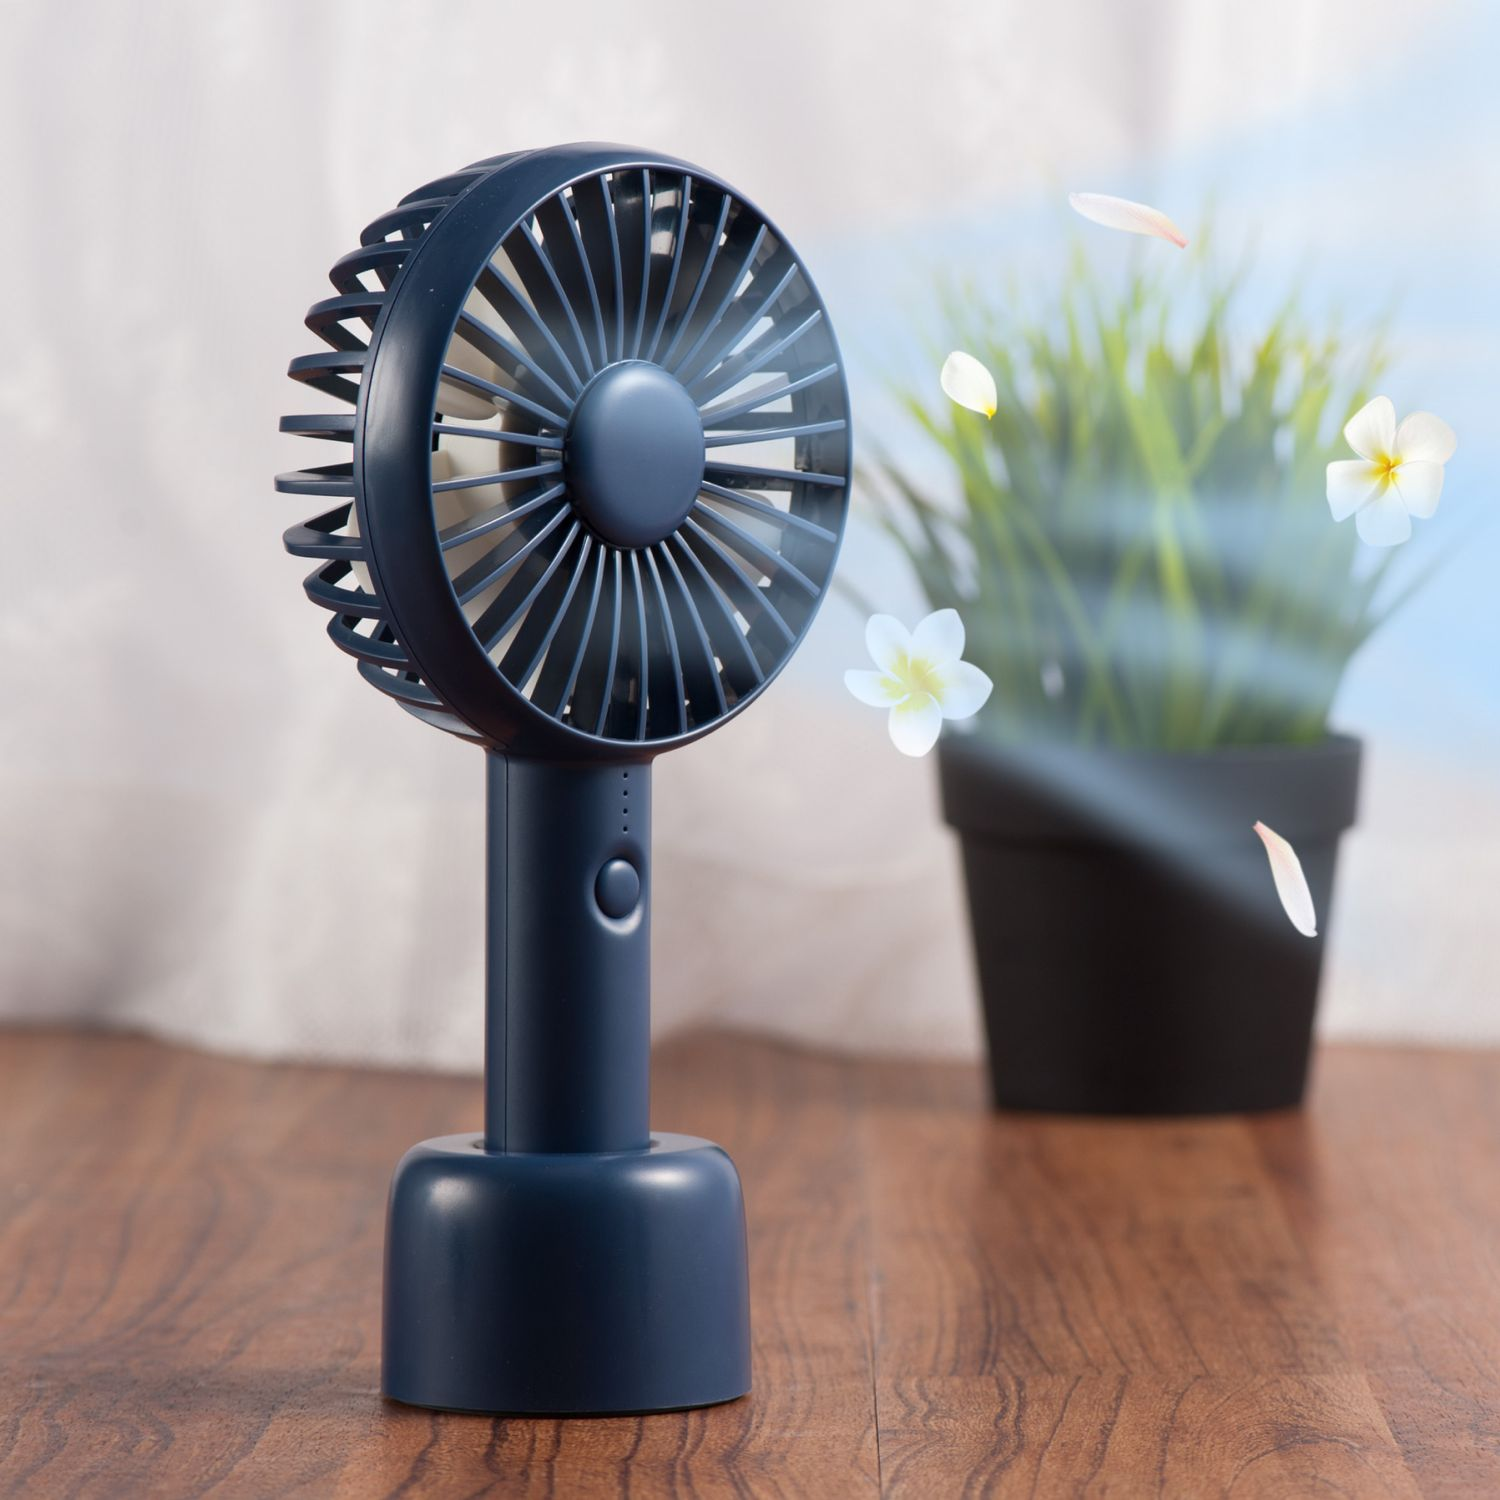 Insten Small Mini Portable Handheld Fan Aroma with USB Rechargeable Battery Cooling Fan with Desk Stand Base 3-Speed Mode for Traveling Home Office Indoor Outdoor Camping - Dark Blue